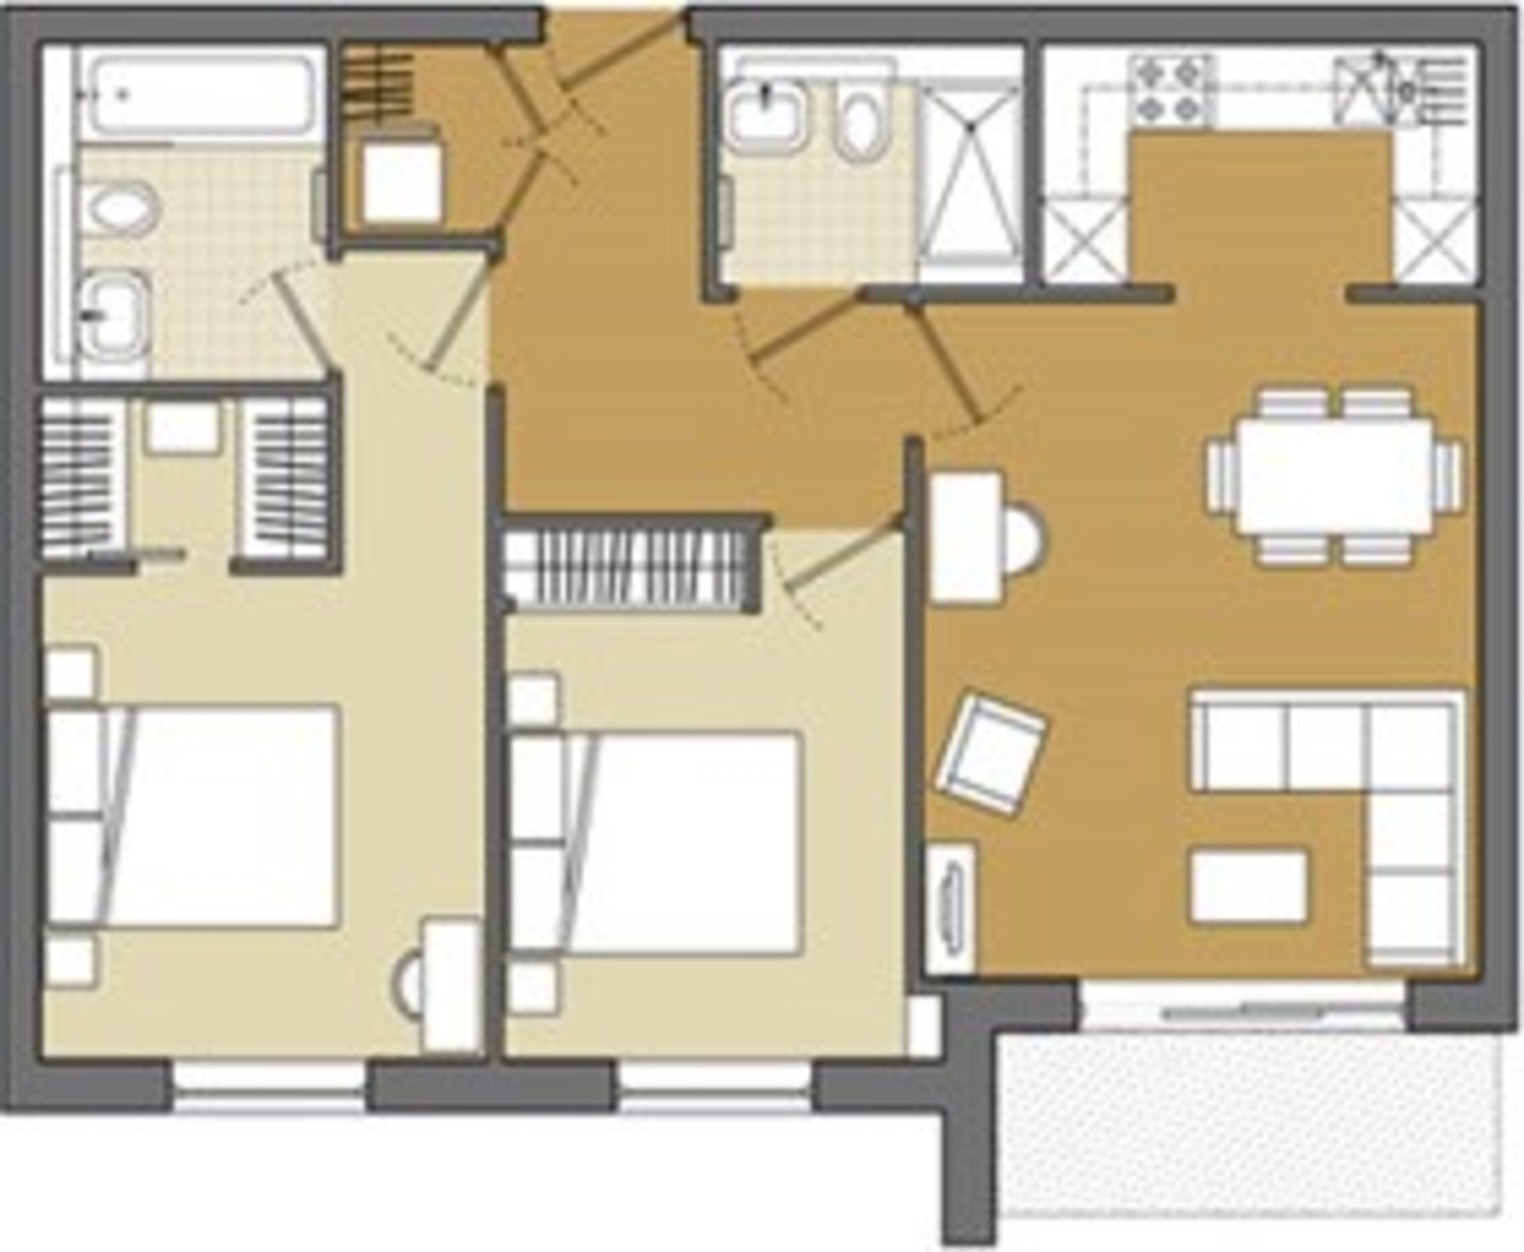 Floorplan for 6 Fairfield, Brewery Square